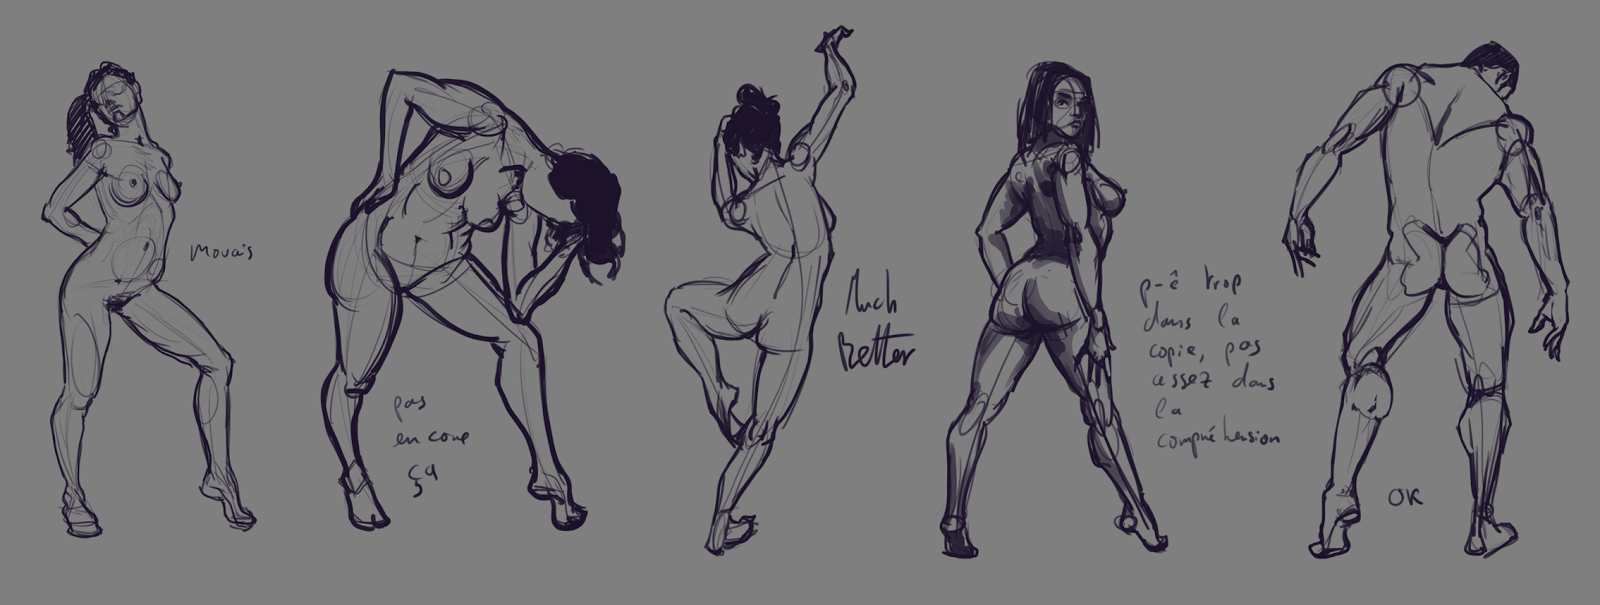 XaB au travail ! [nudity inside] - Page 21 SpeedStudies_2017-06-13